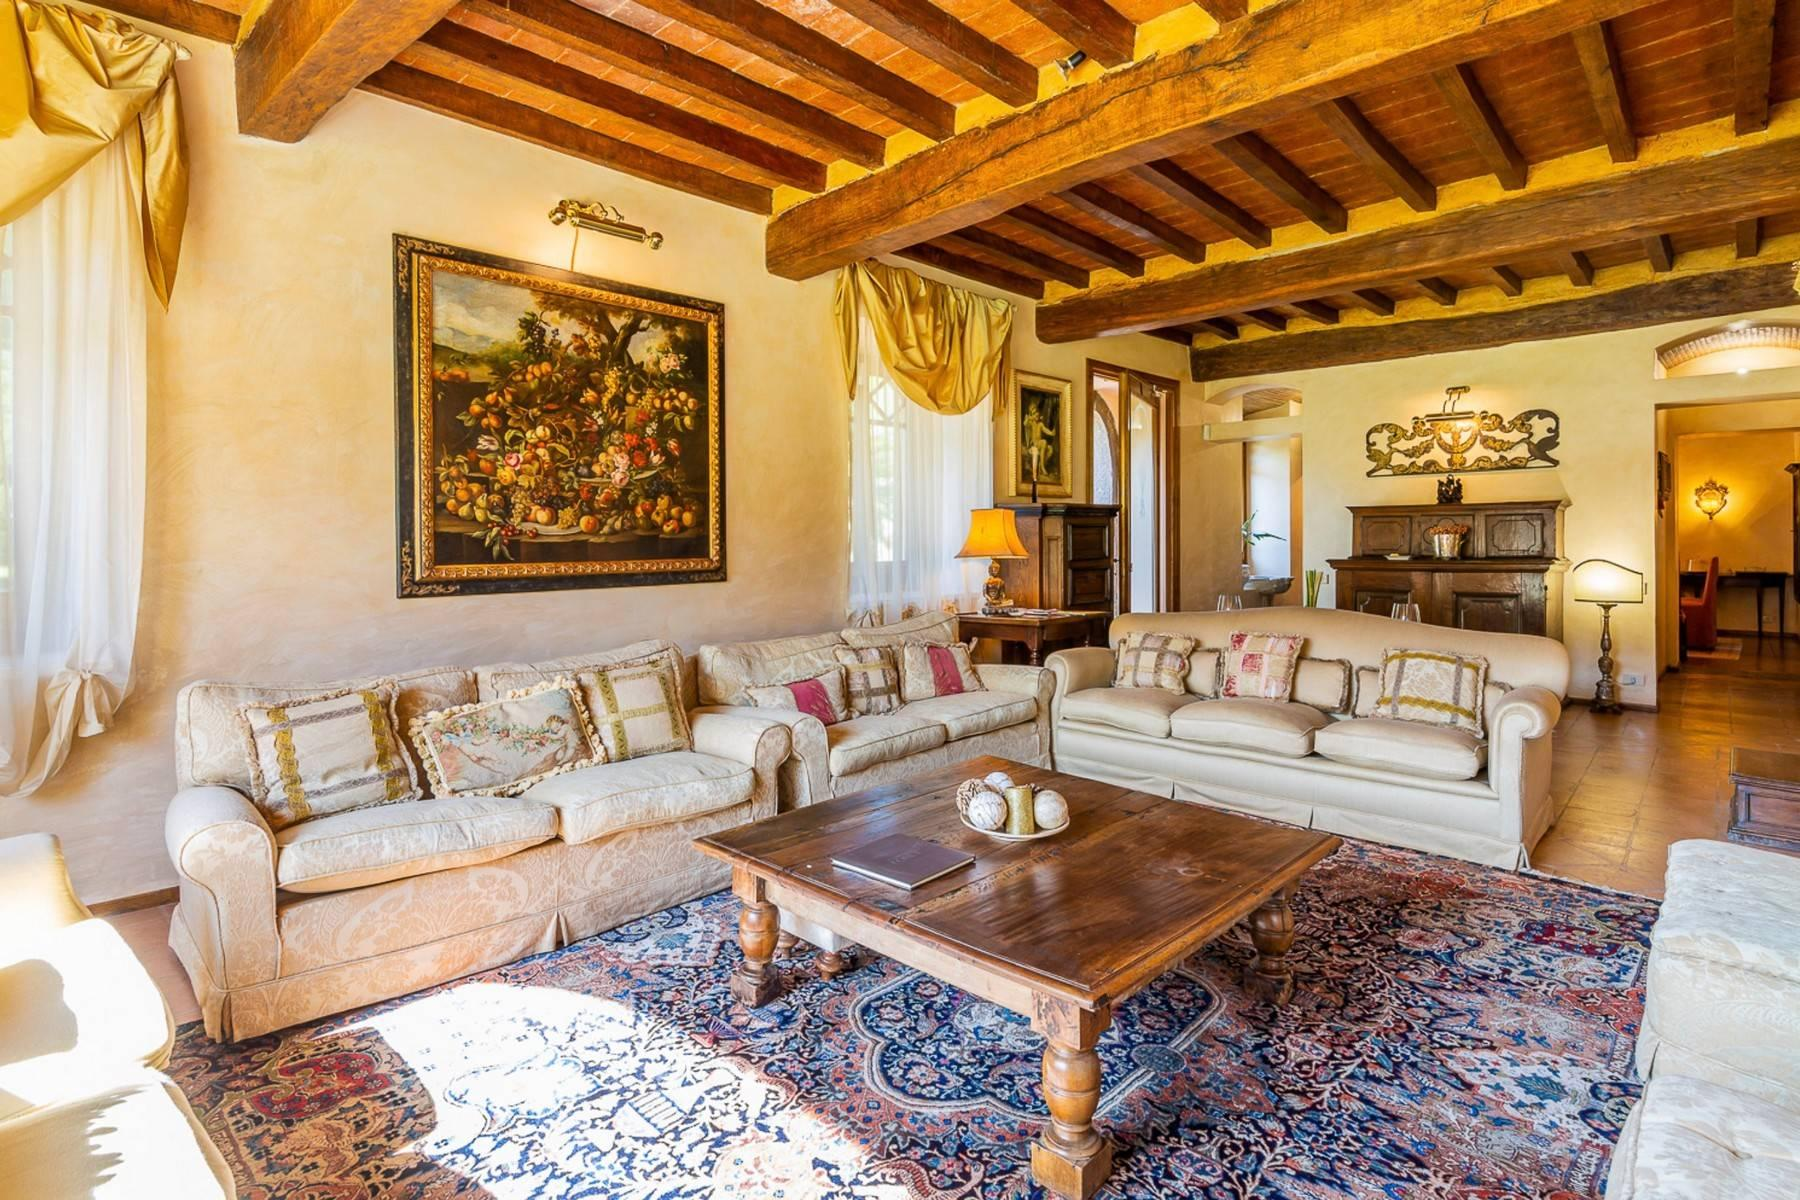 Majestic Luxury Villa with outbuildings on the hills south of Lucca - 6